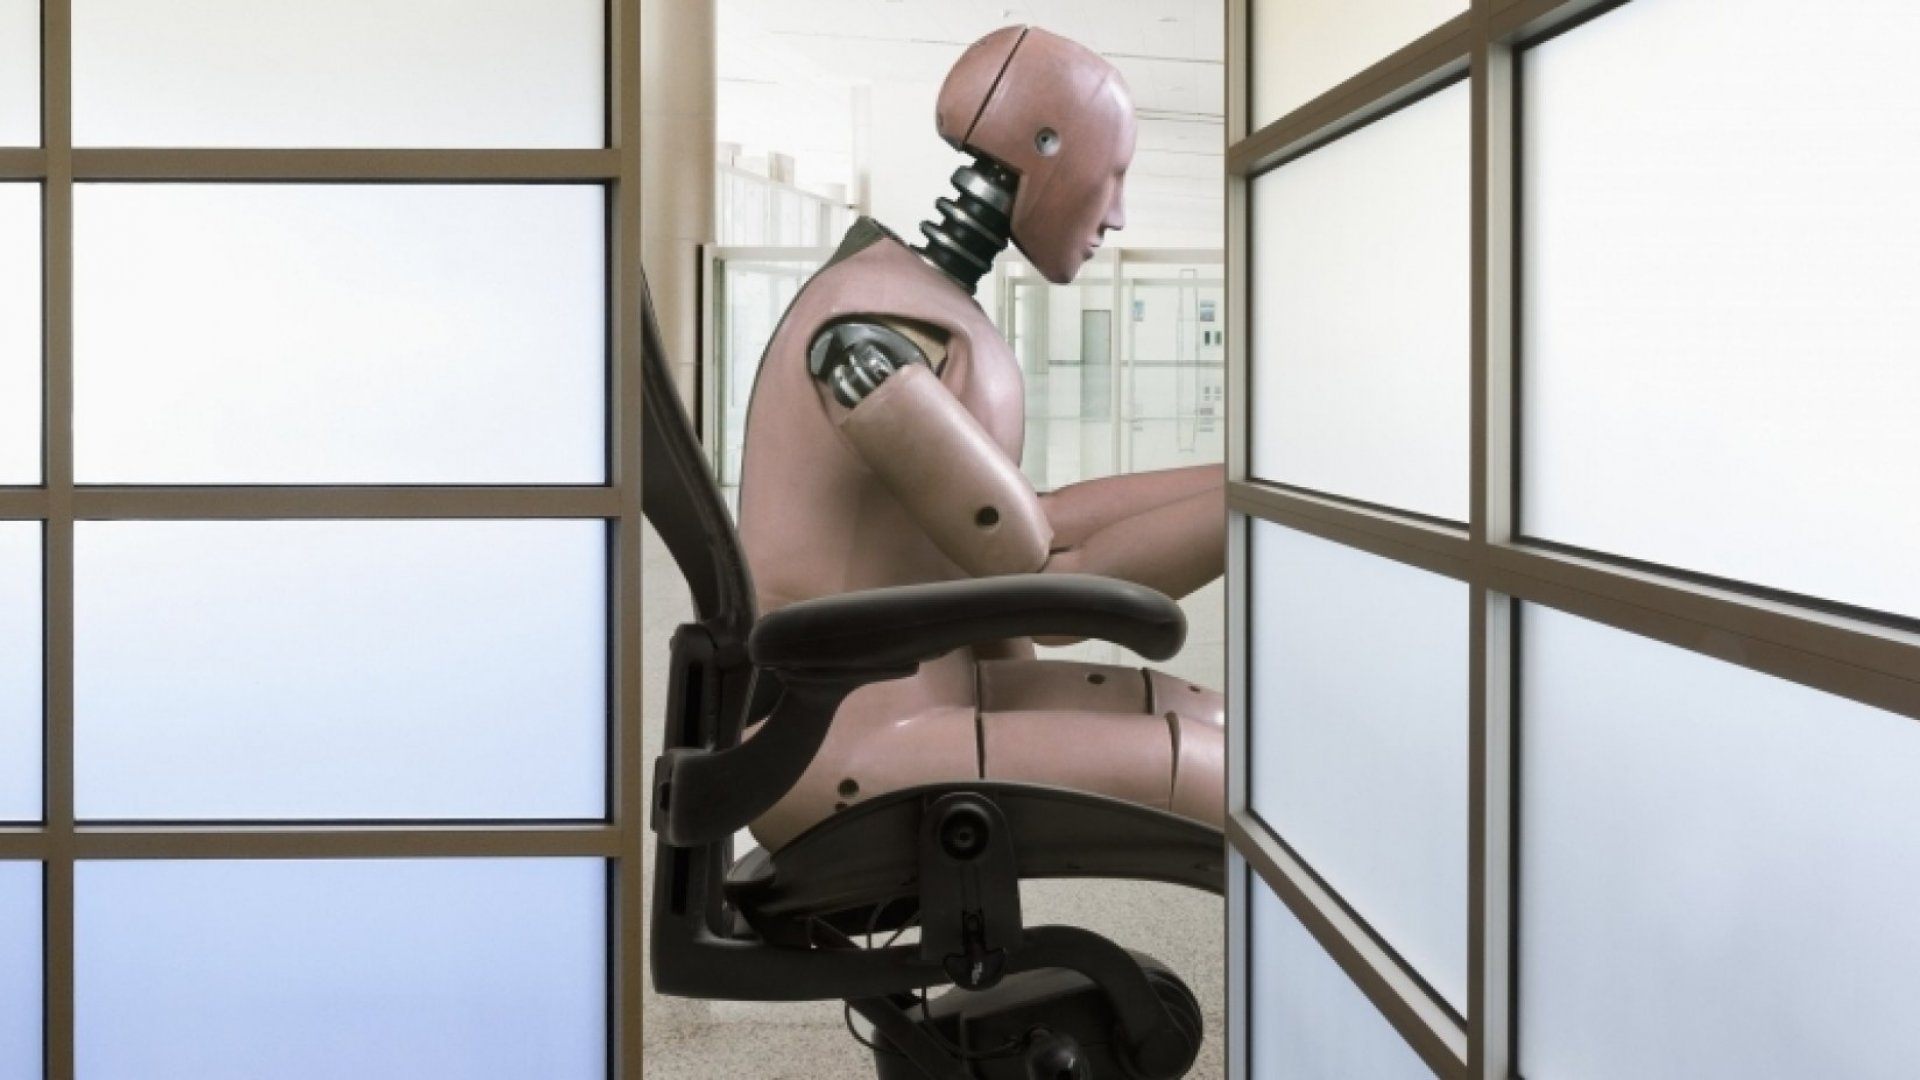 Will a Robot Be Your Next Boss?